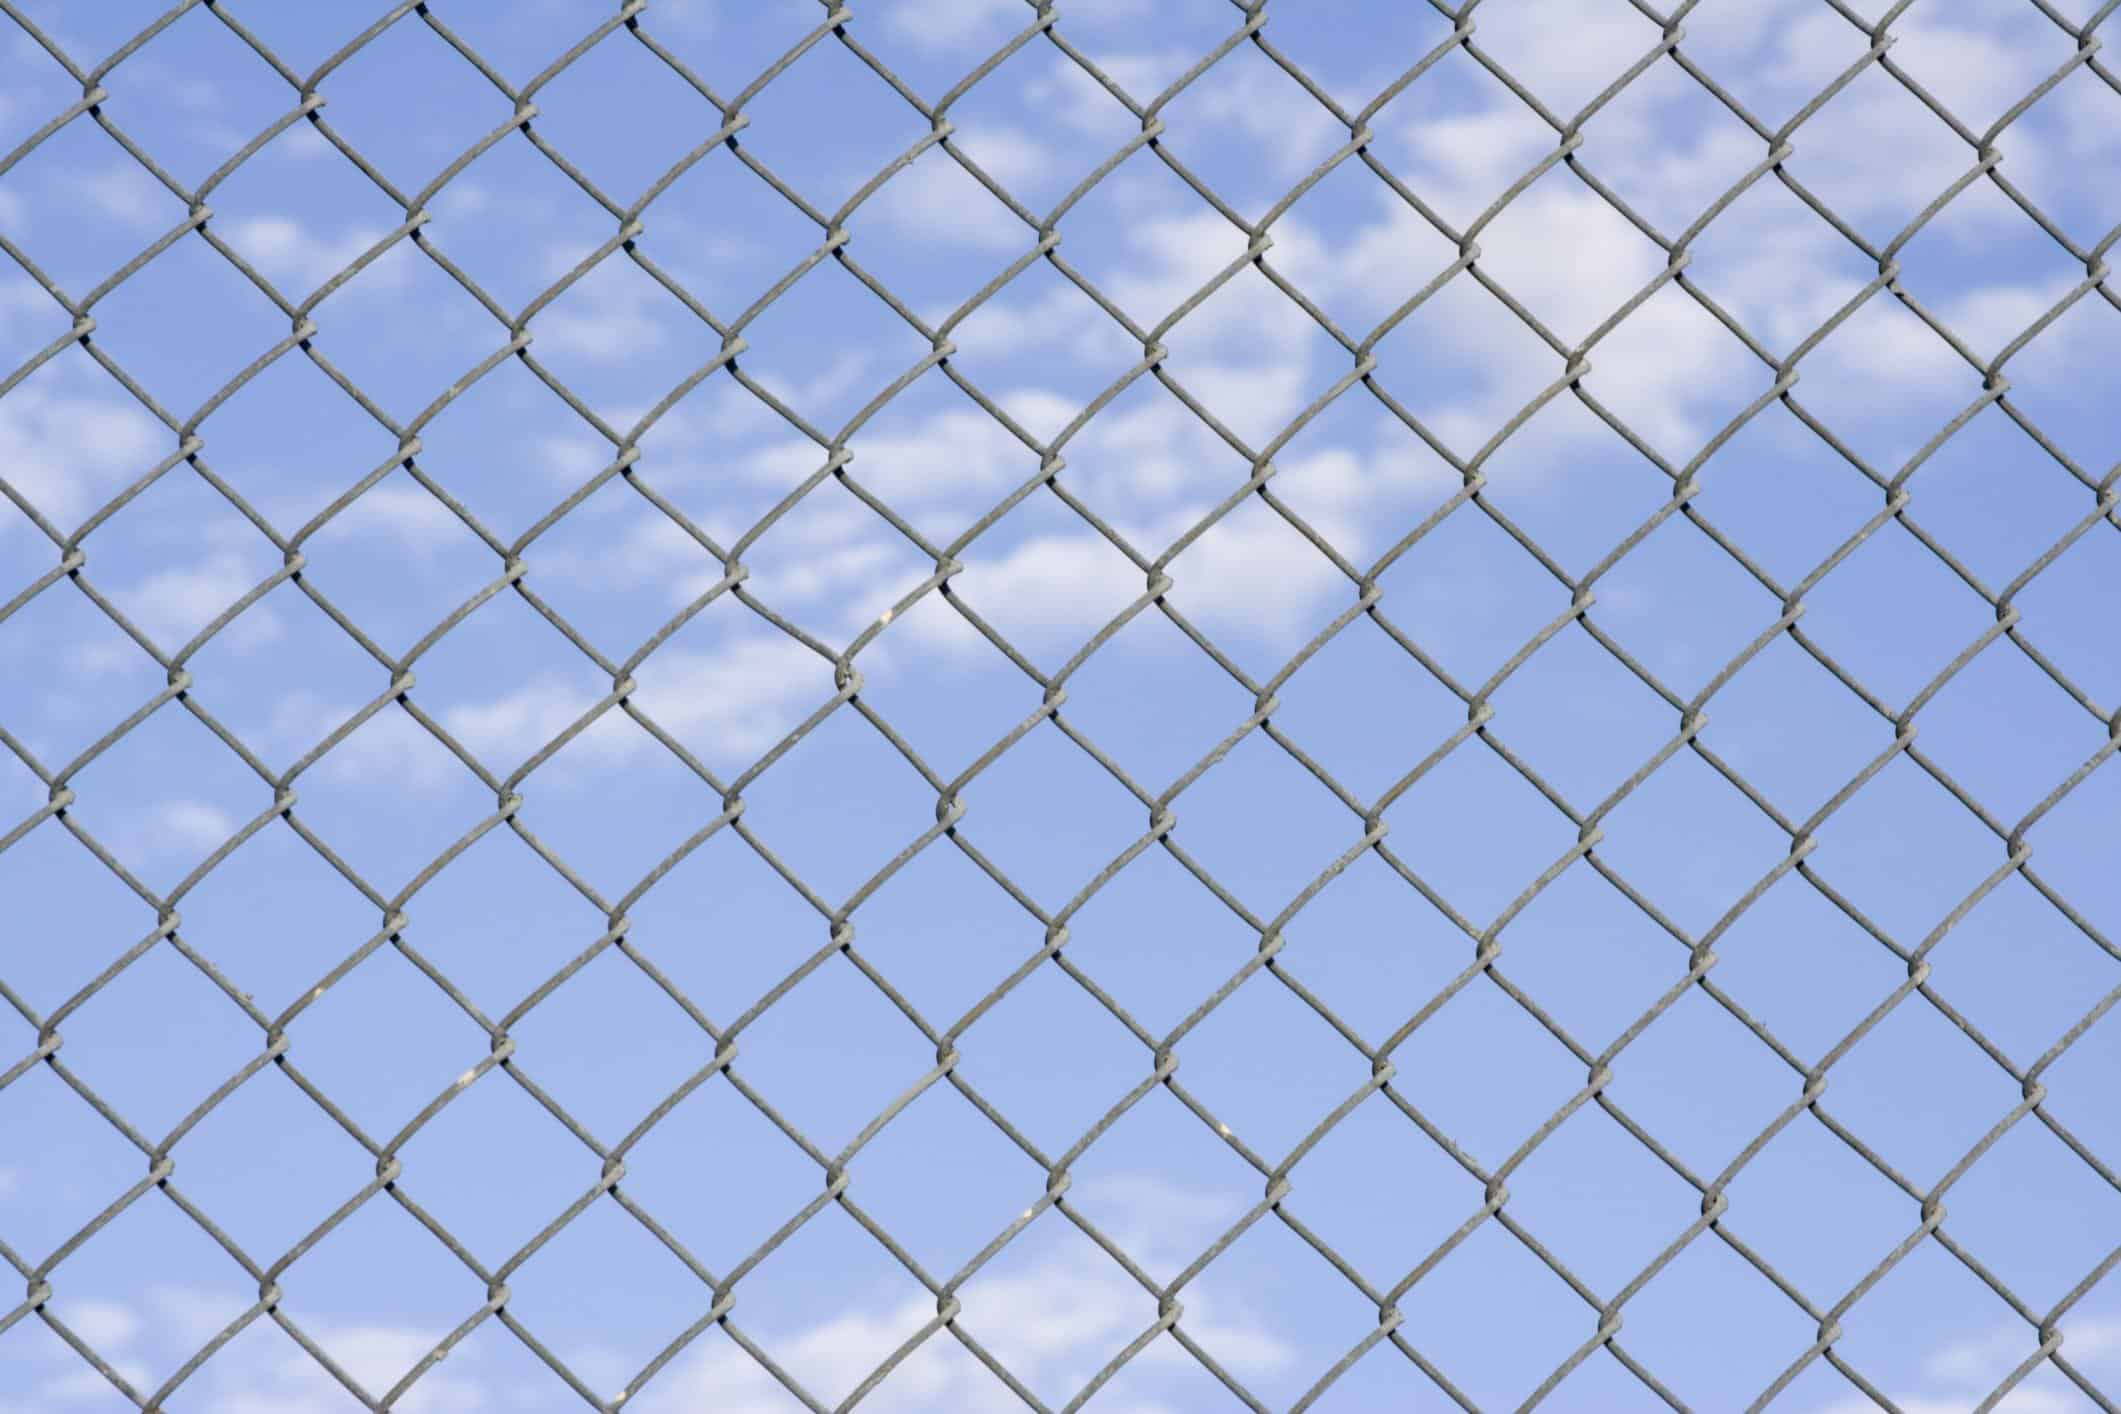 Fairfield CA Fence Company - Chain Link Fencing